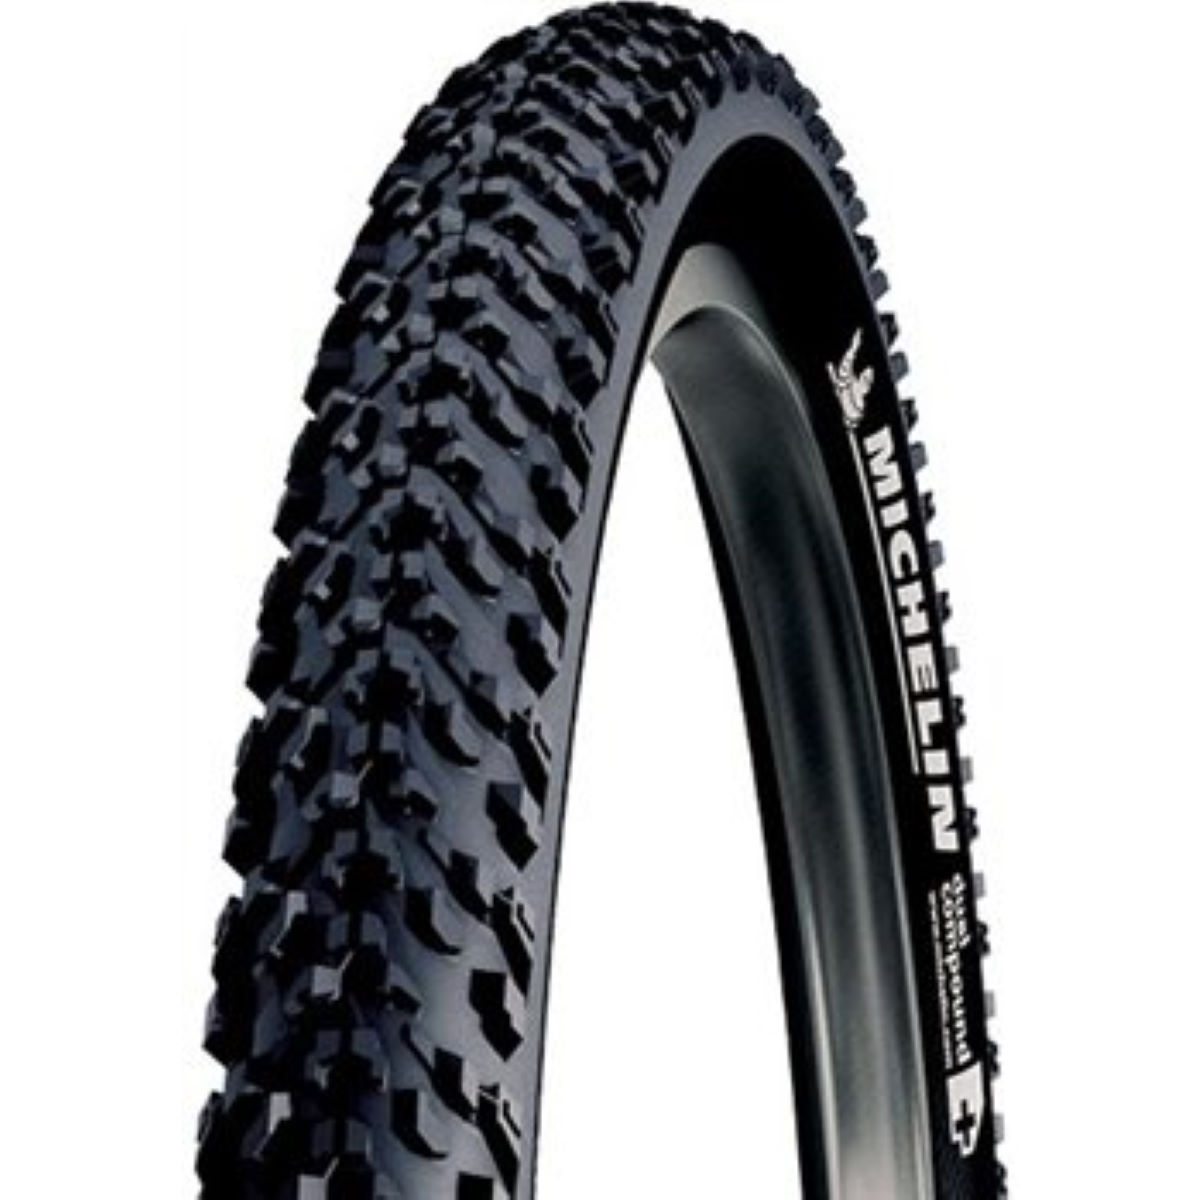 Pneu VTT Michelin Country Dry 2 - 26' 2.0' Wire Bead Noir Pneus